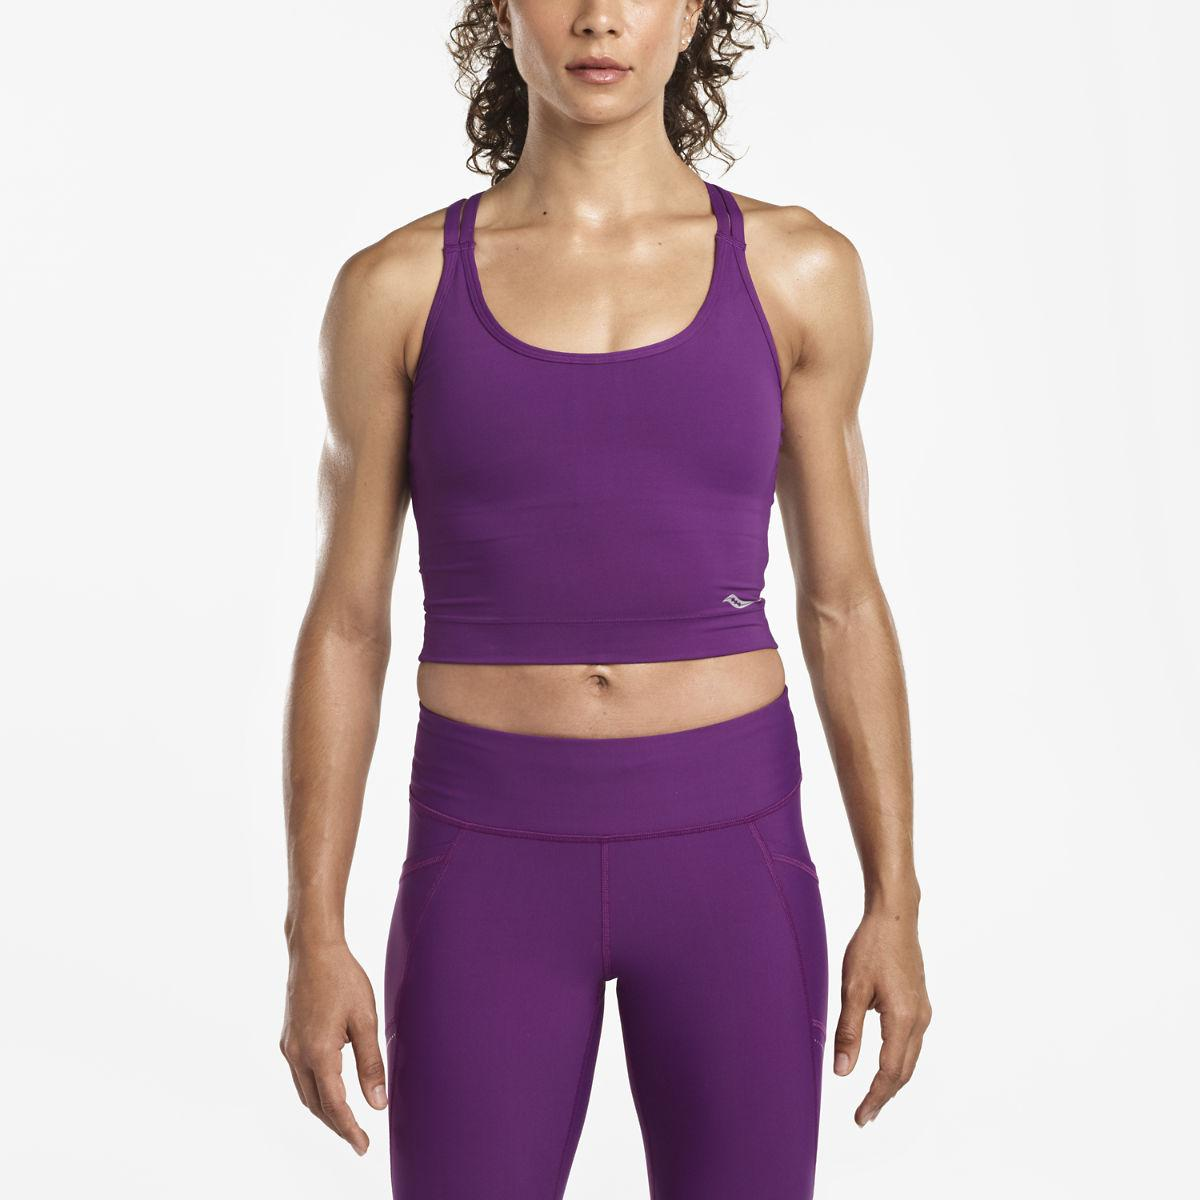 fe7ce79b586a0 Saucony Impulse Crop Top in Purple - Lyst